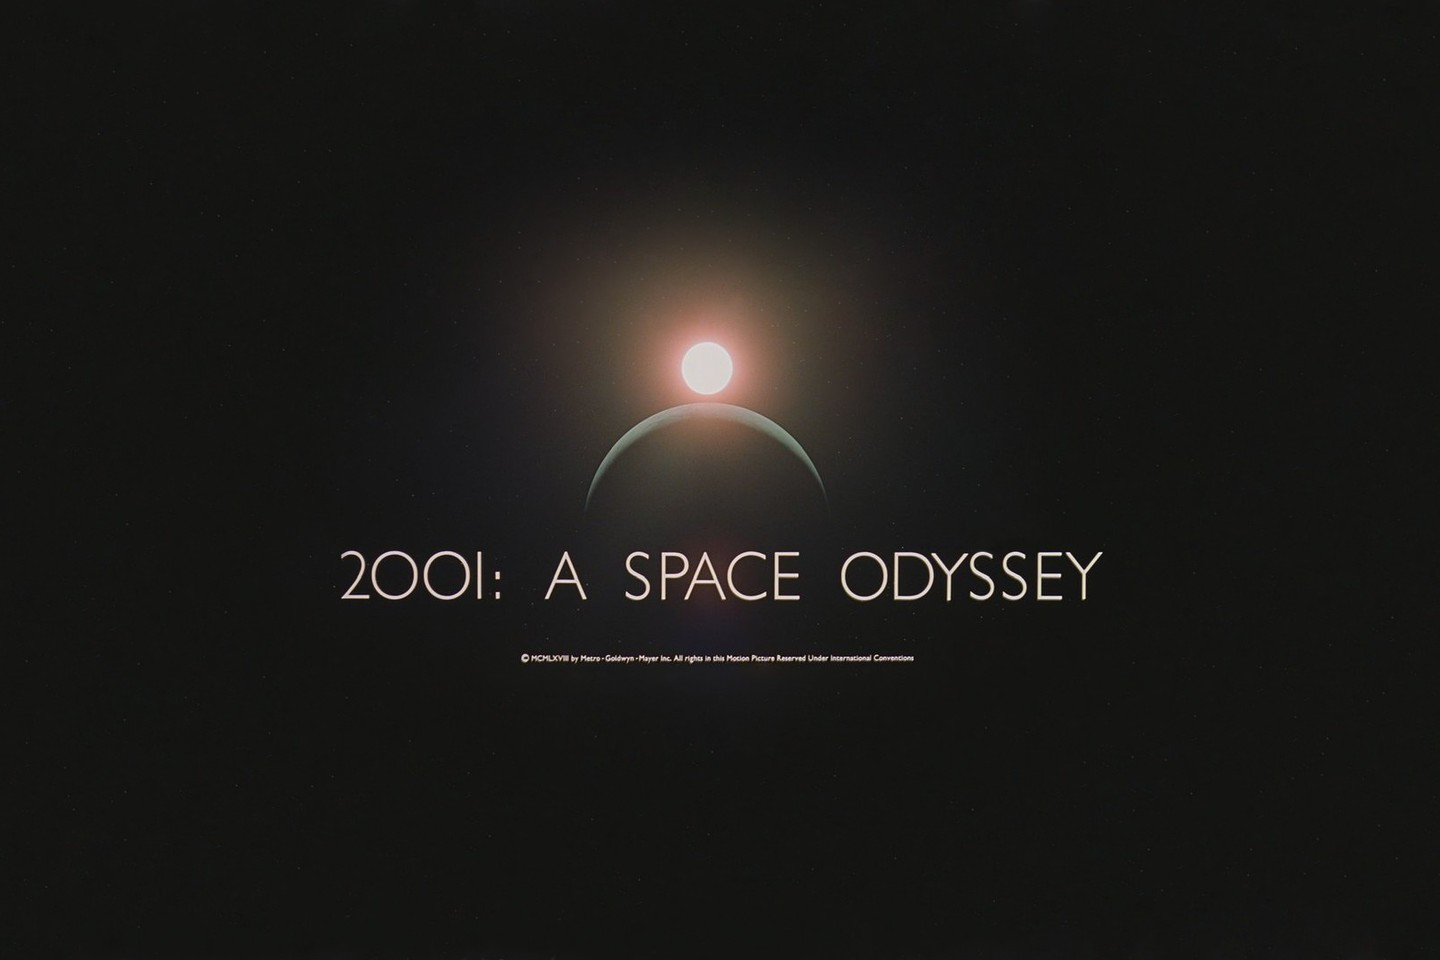 2001 a space odyssey movies outer wallpaper - 2001 a space odyssey wallpaper ...